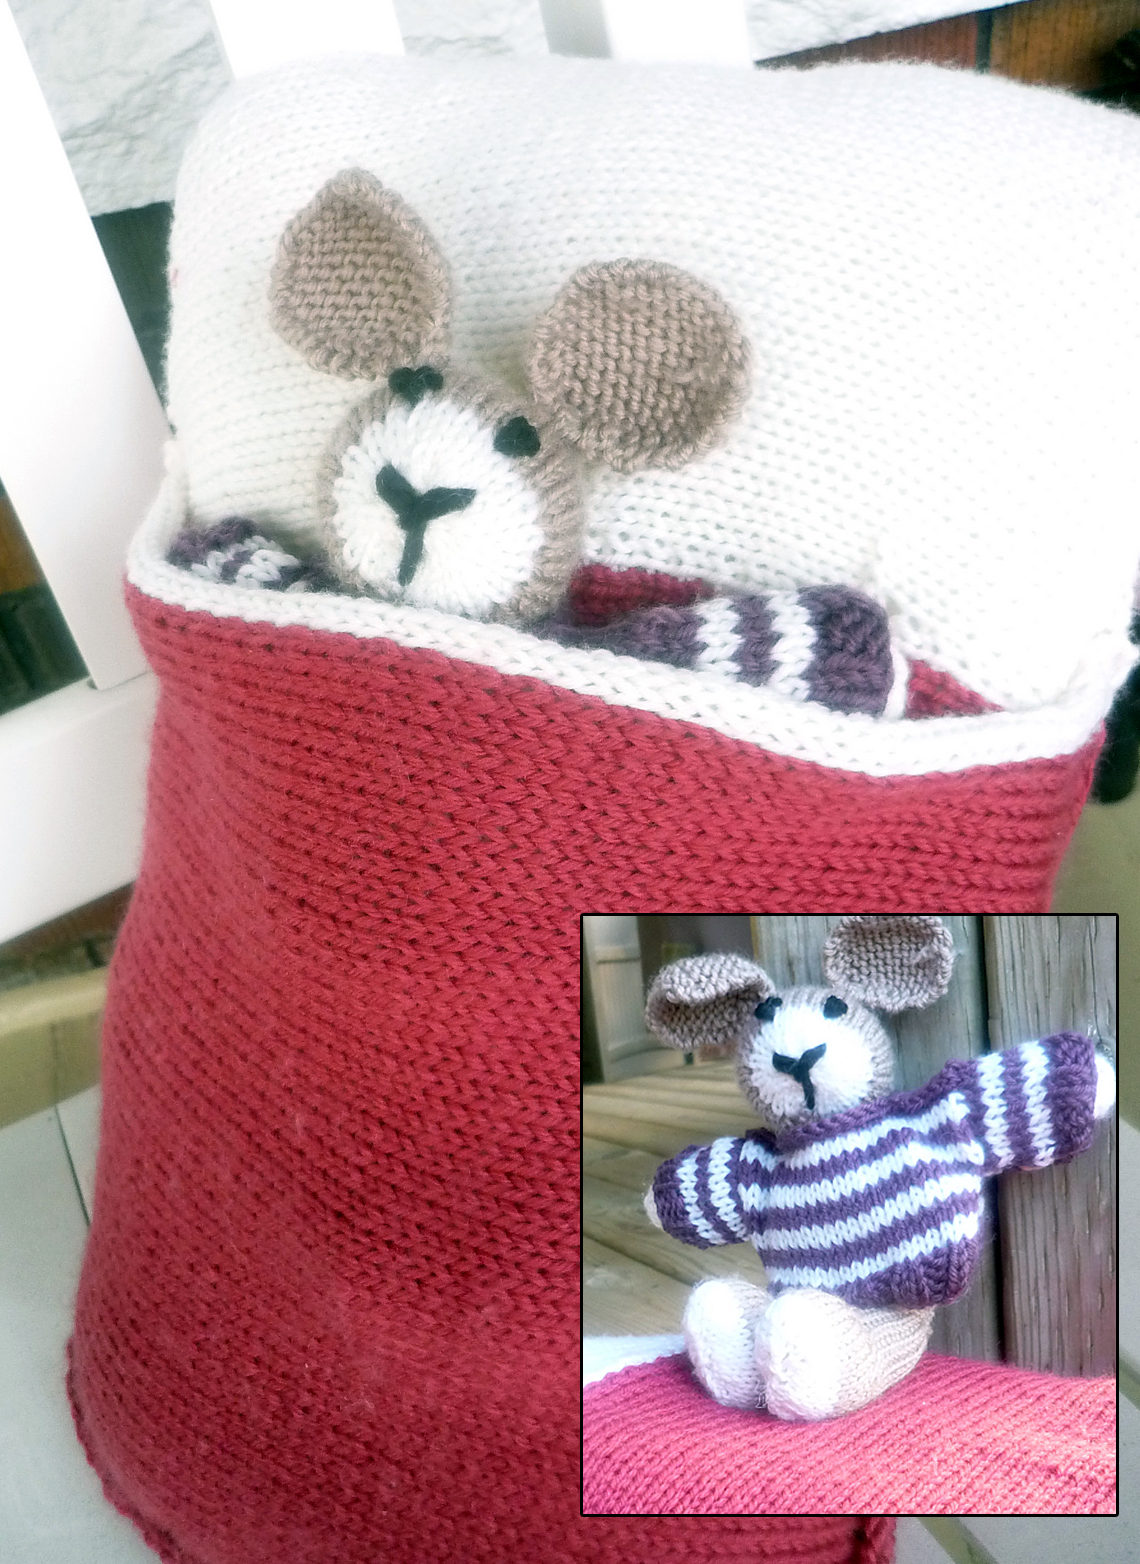 Free Knitting Pattern of Bunny in a Pillow